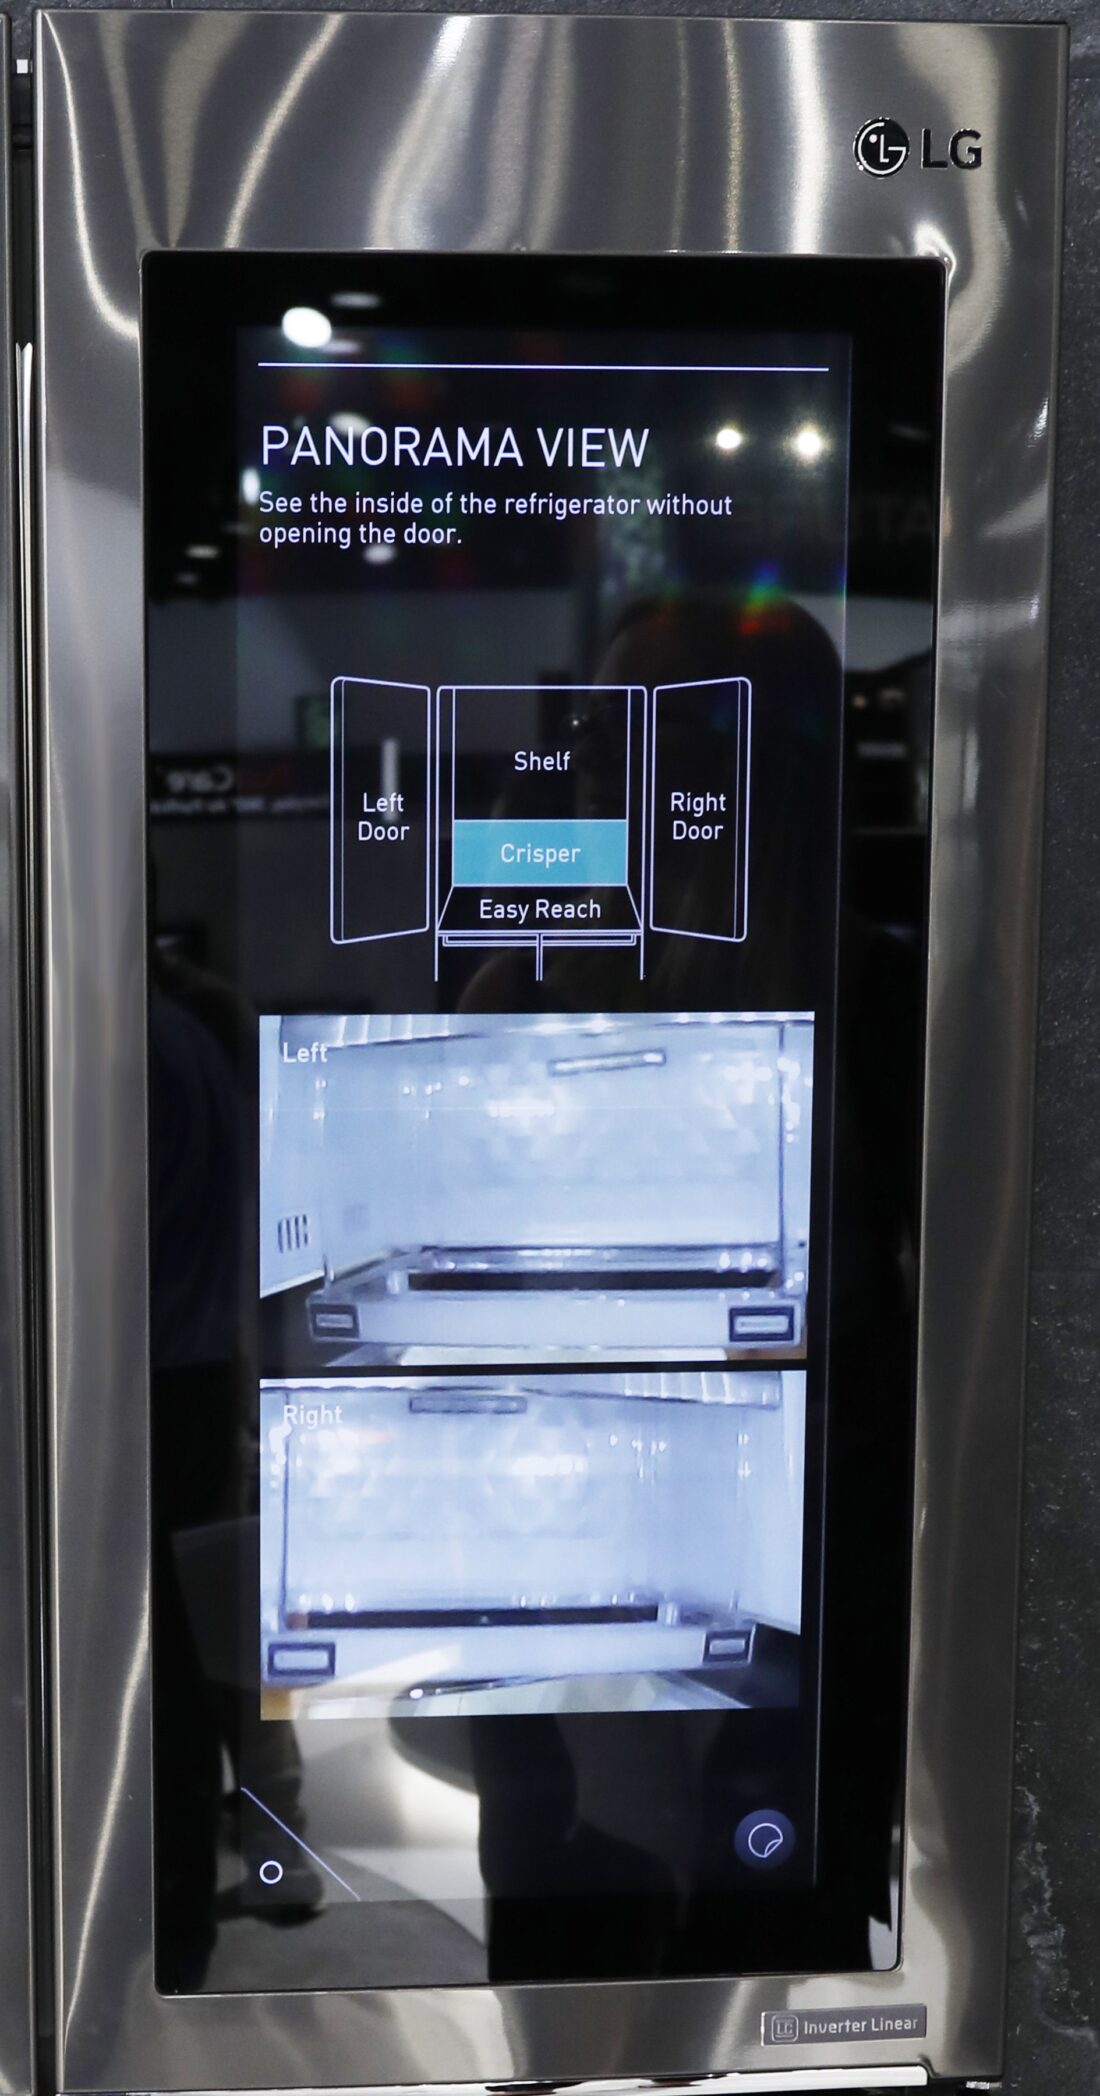 LG's InstaView Door-in-Door refrigerator featuring the Panorama View display screen in the LG display zone at CES 2017